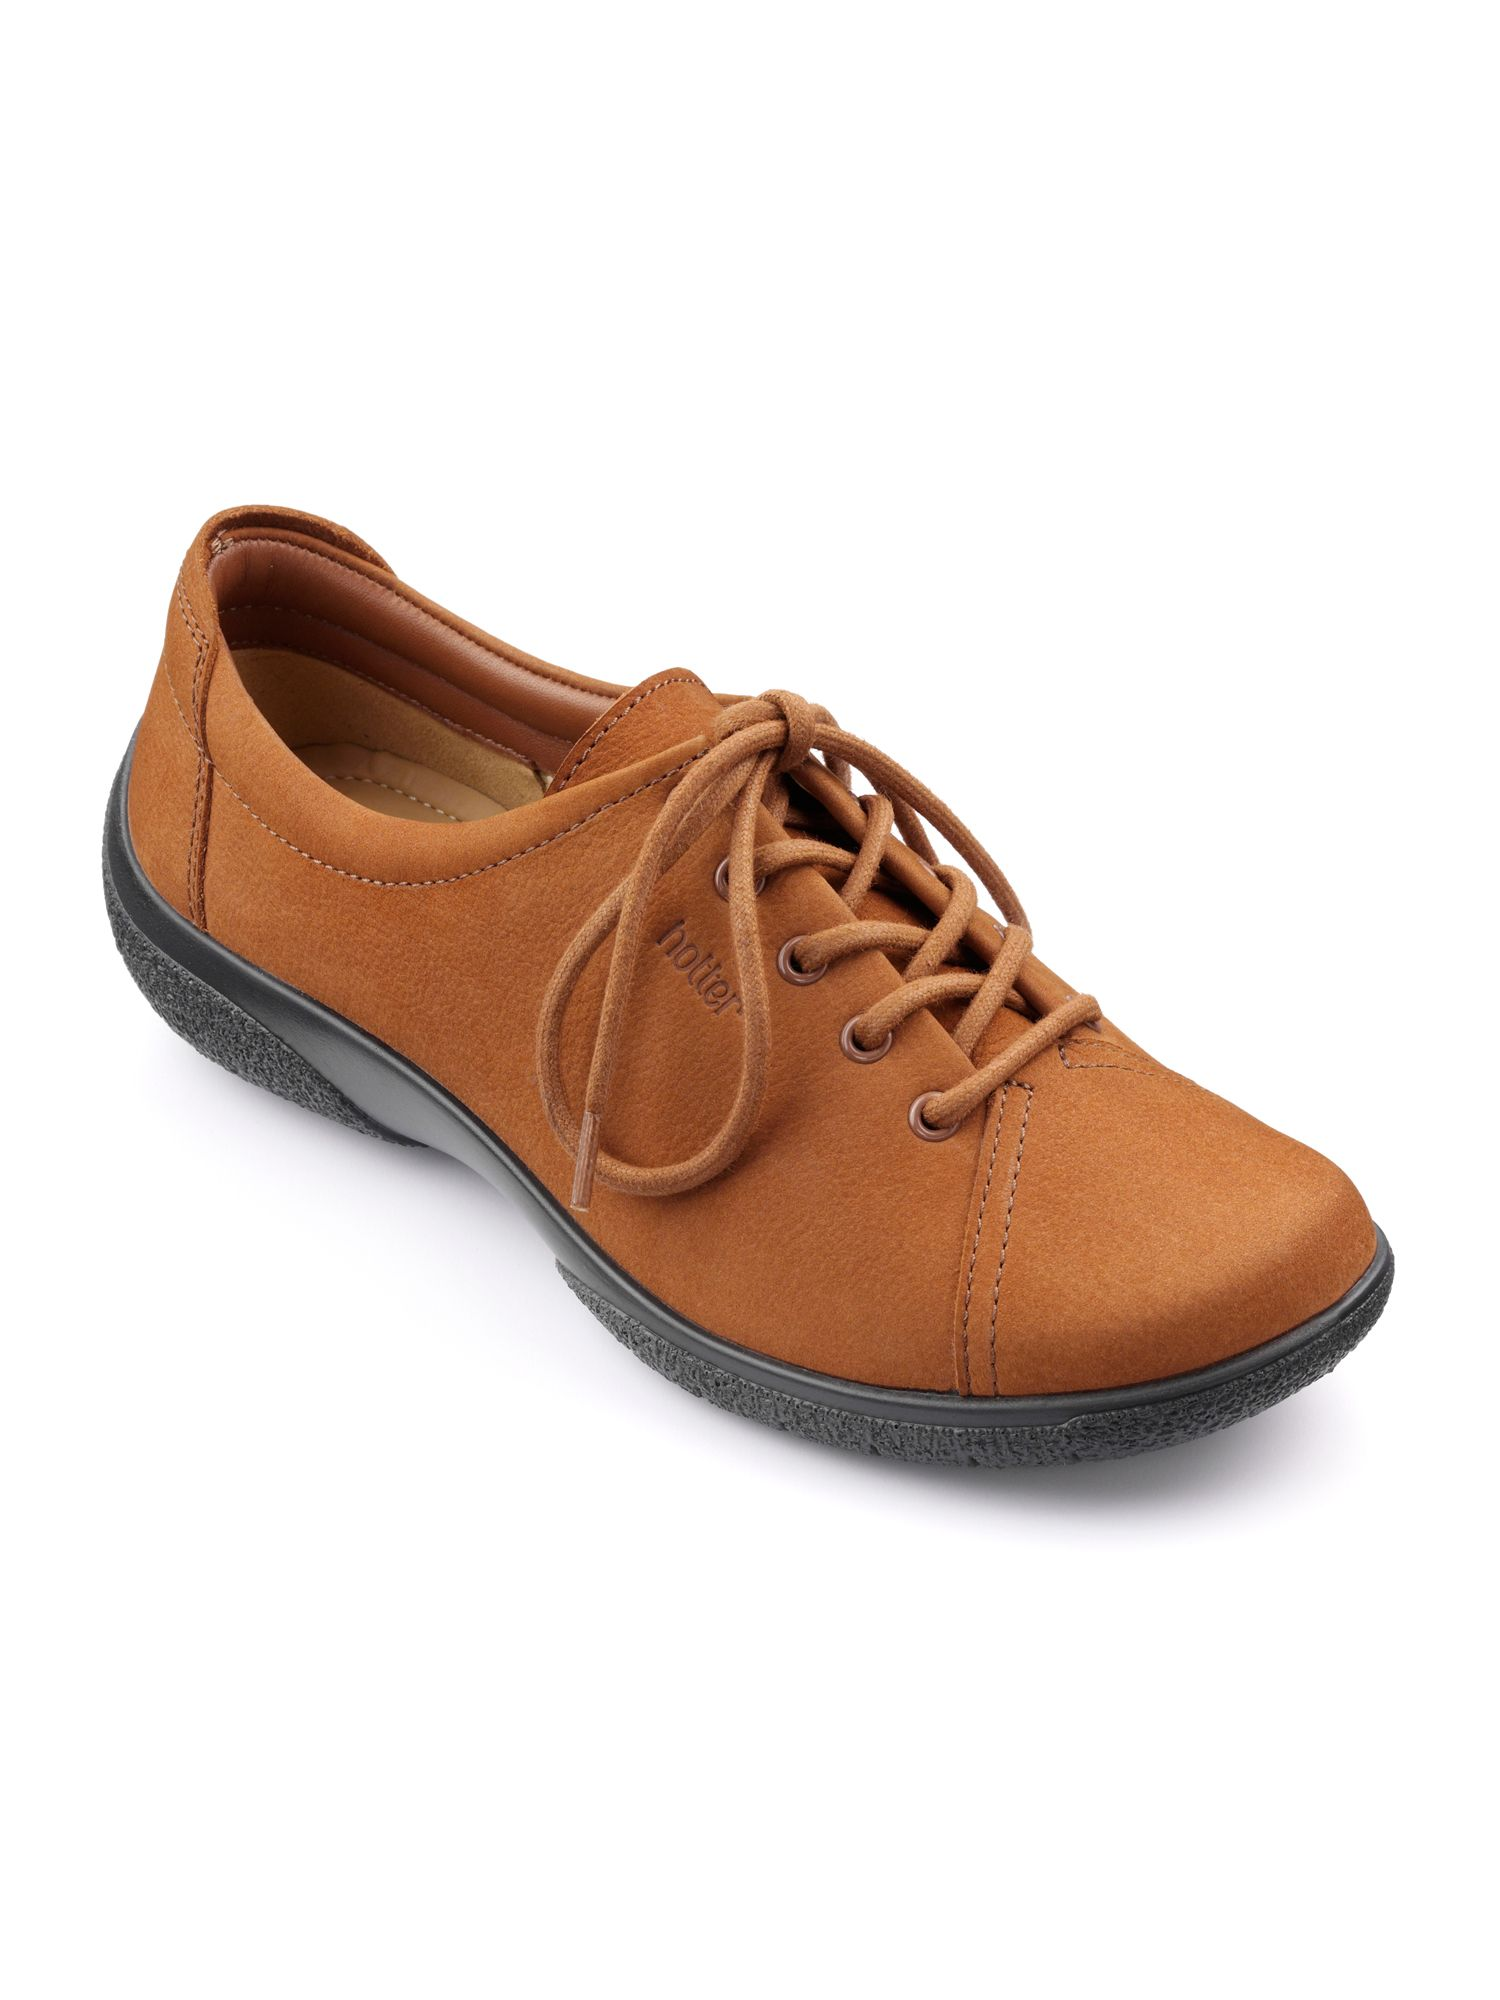 Hotter Dew Original Extra Wide Shoes, Tan